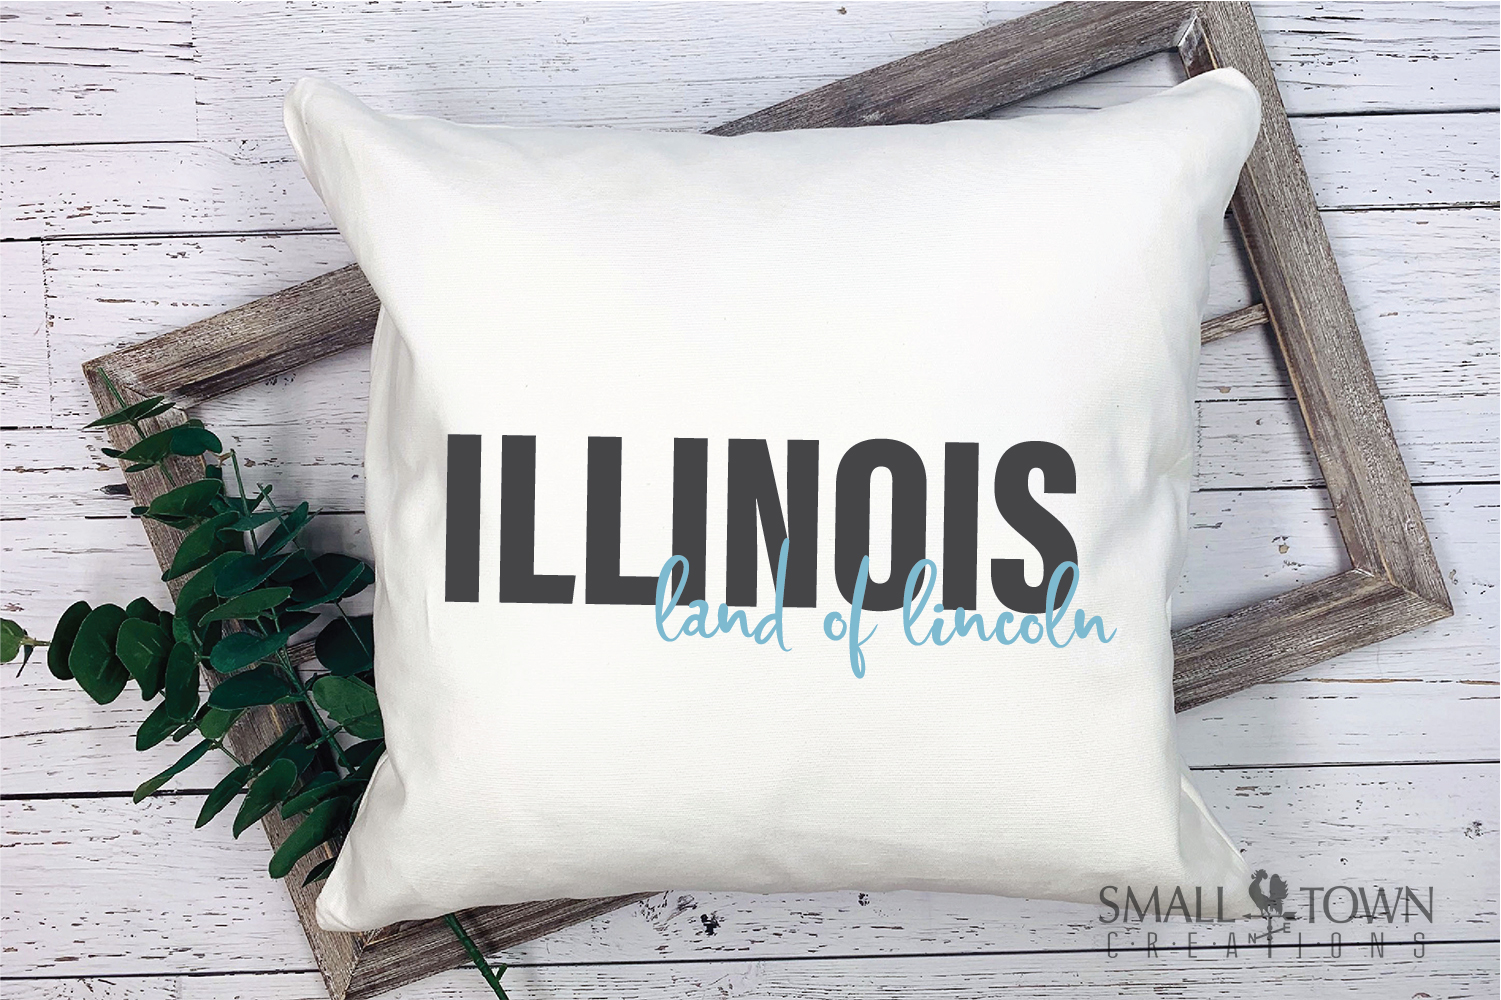 Illinois, Land of Lincoln-slogan, Logo, PRINT, CUT & DESIGN example image 5